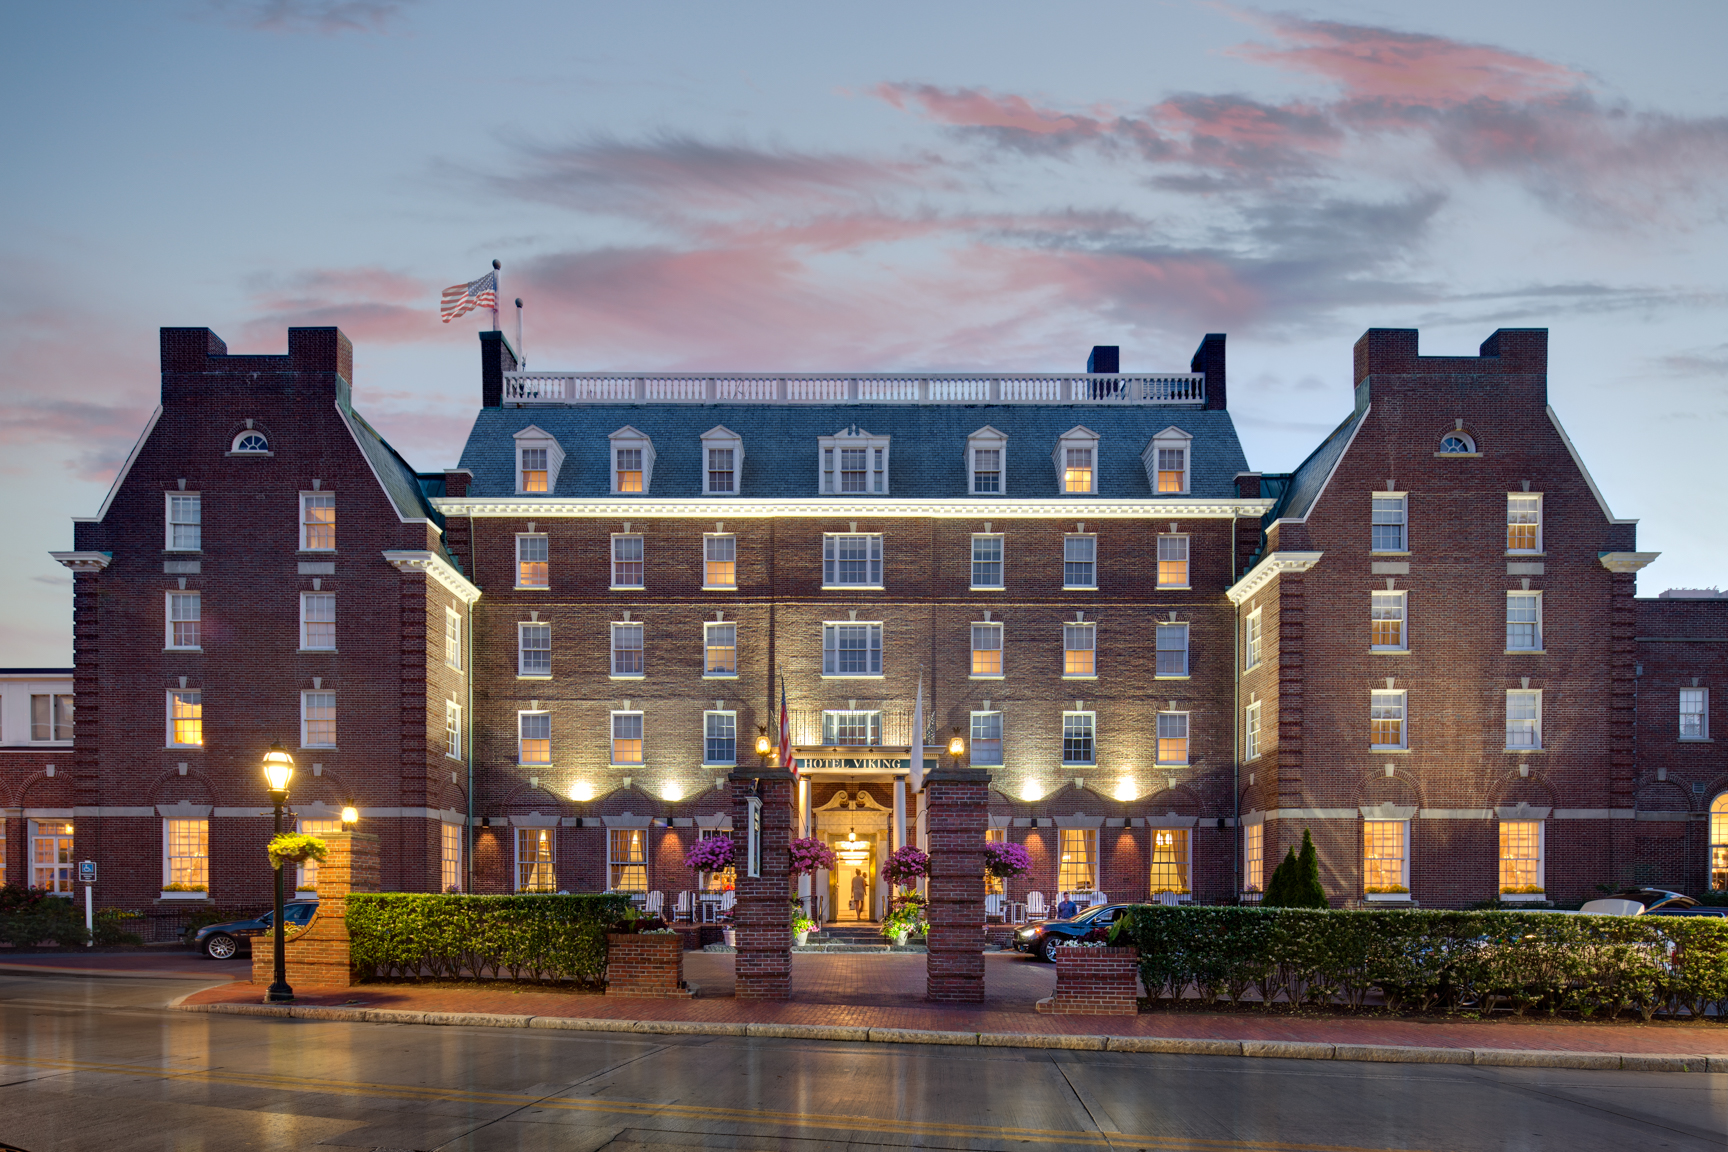 Hotel Viking Recognized With Condé Nast Traveler S 2017 Readers Choice Award In Top Hotels New England